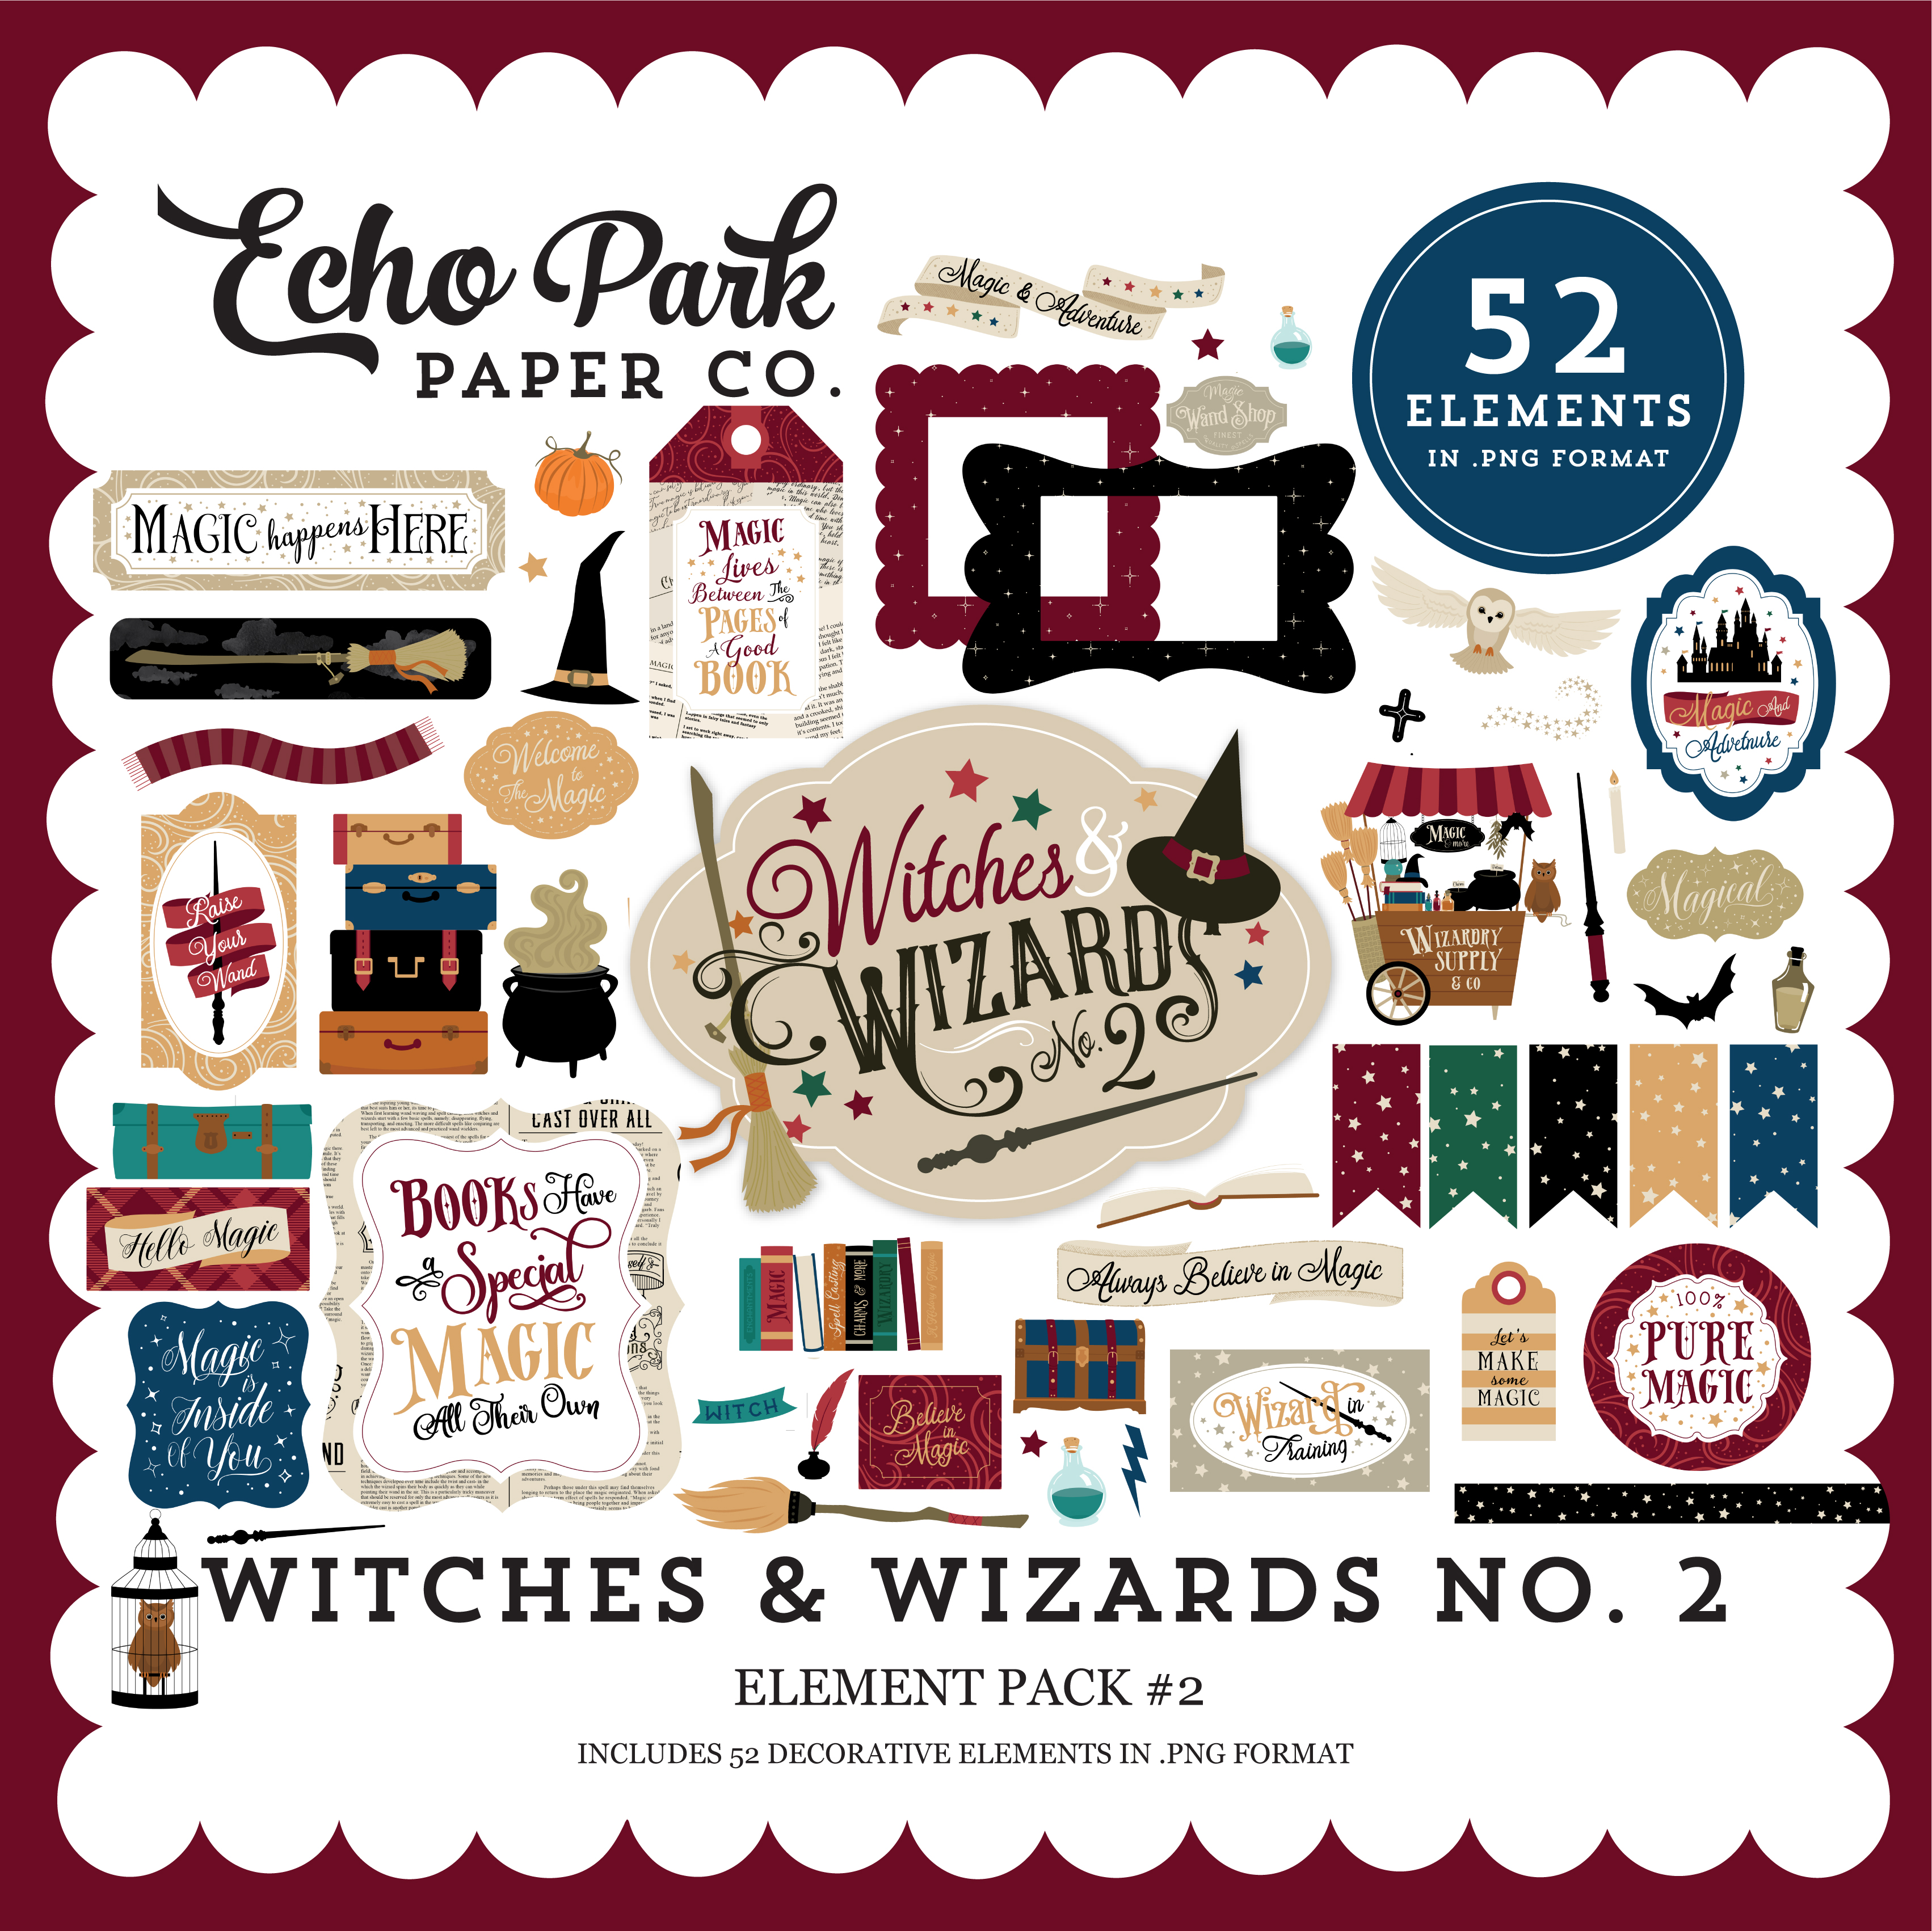 Witches & Wizards No. 2 Element Pack #2